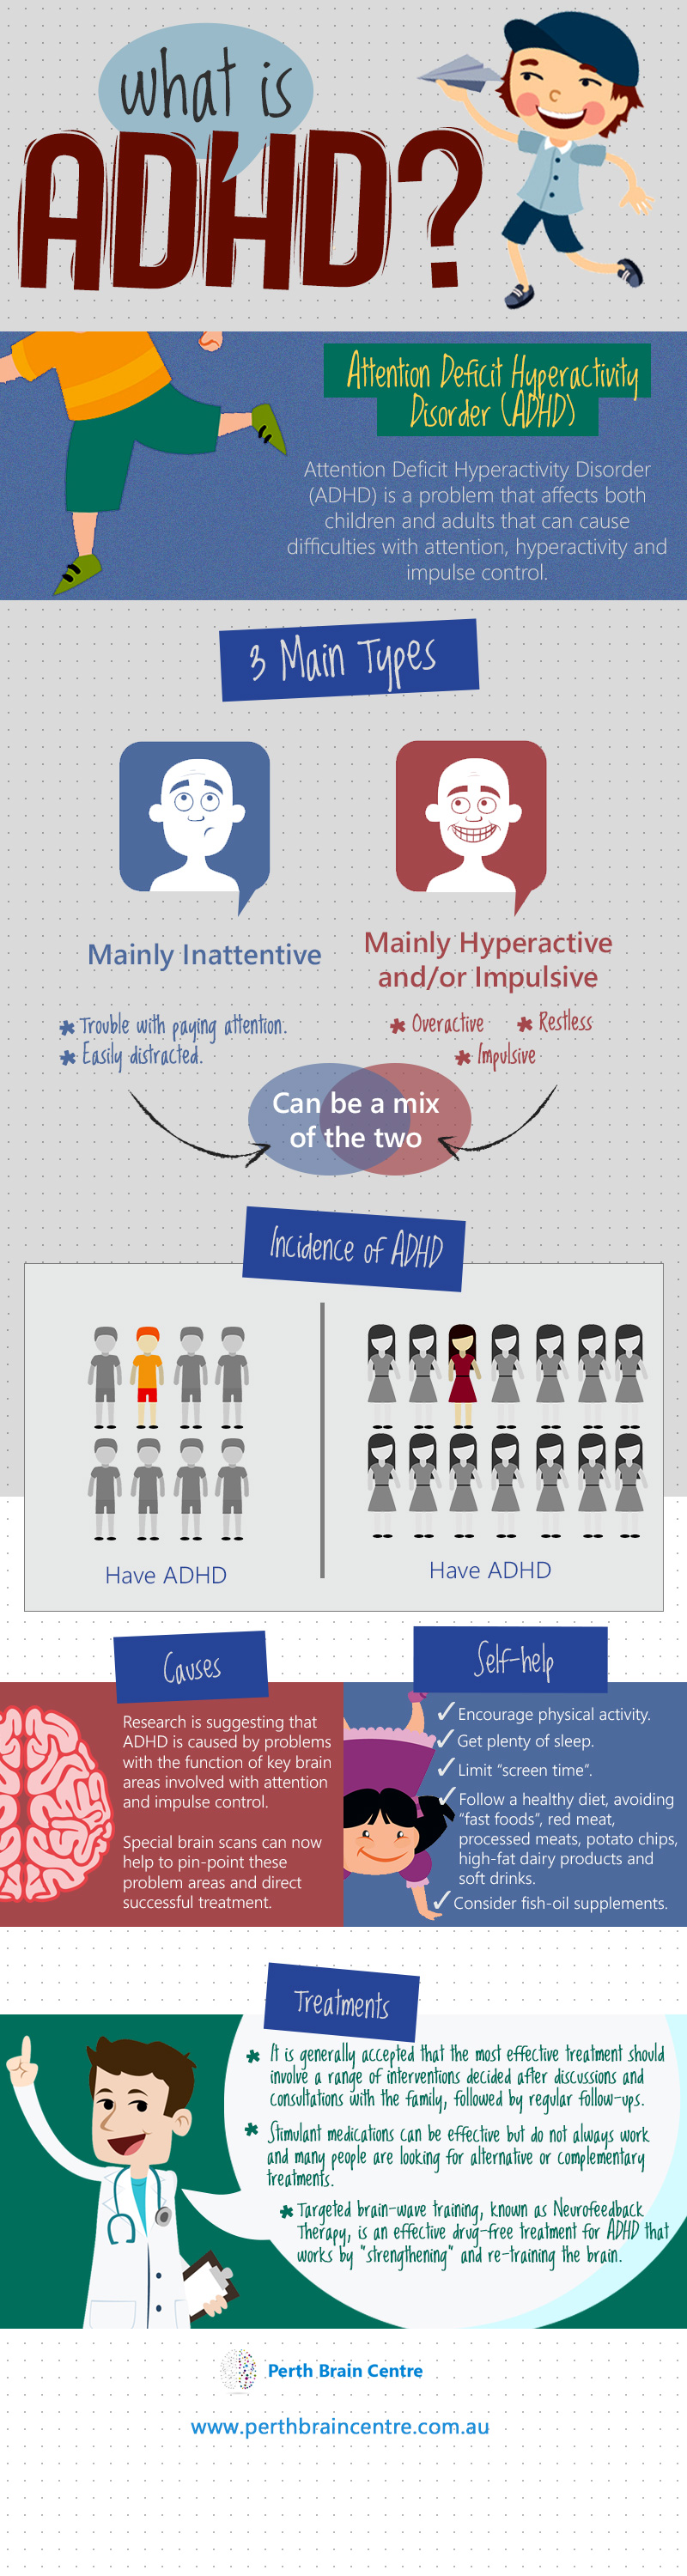 What is ADHD? ADHD Definition and Treatment